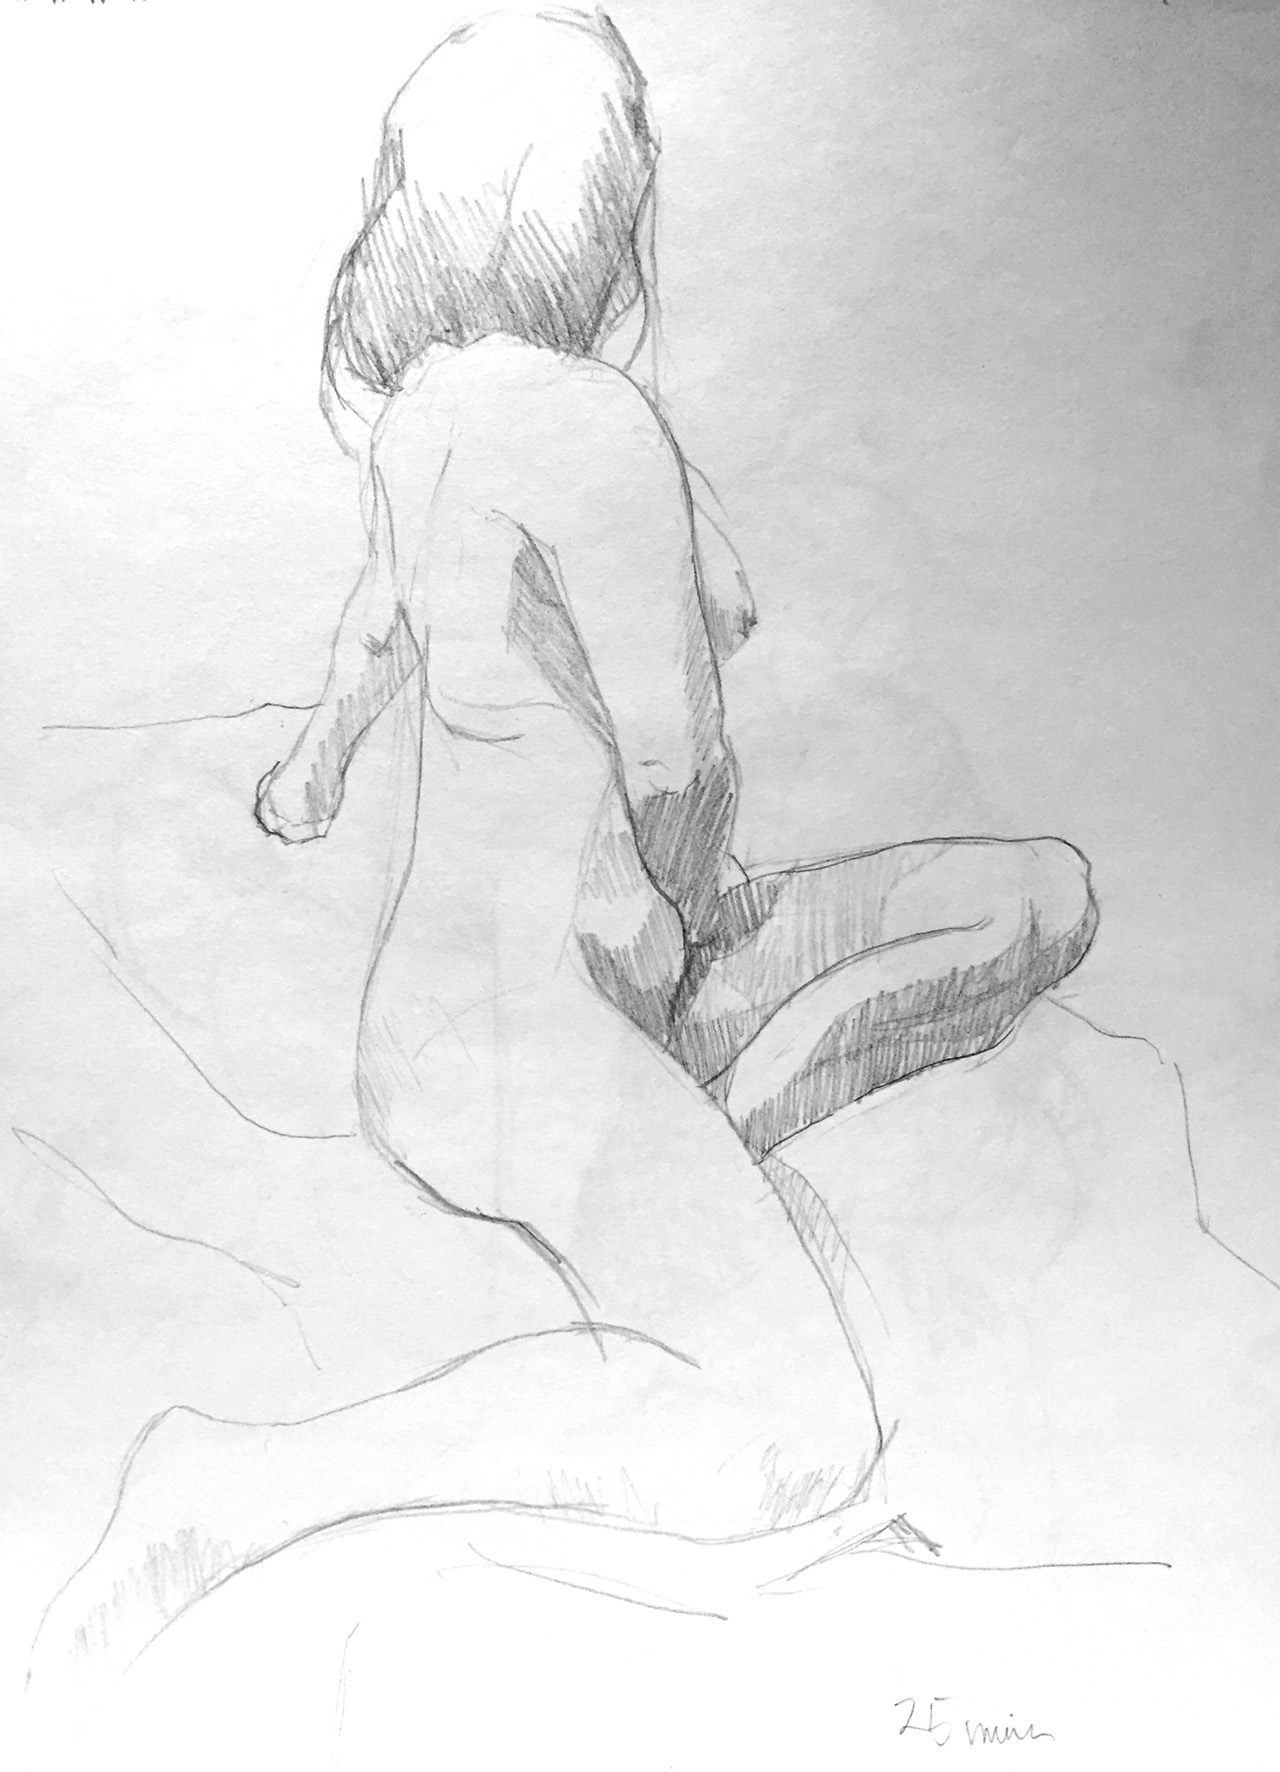 Life Drawing Sketch 3 Session 26/10/17